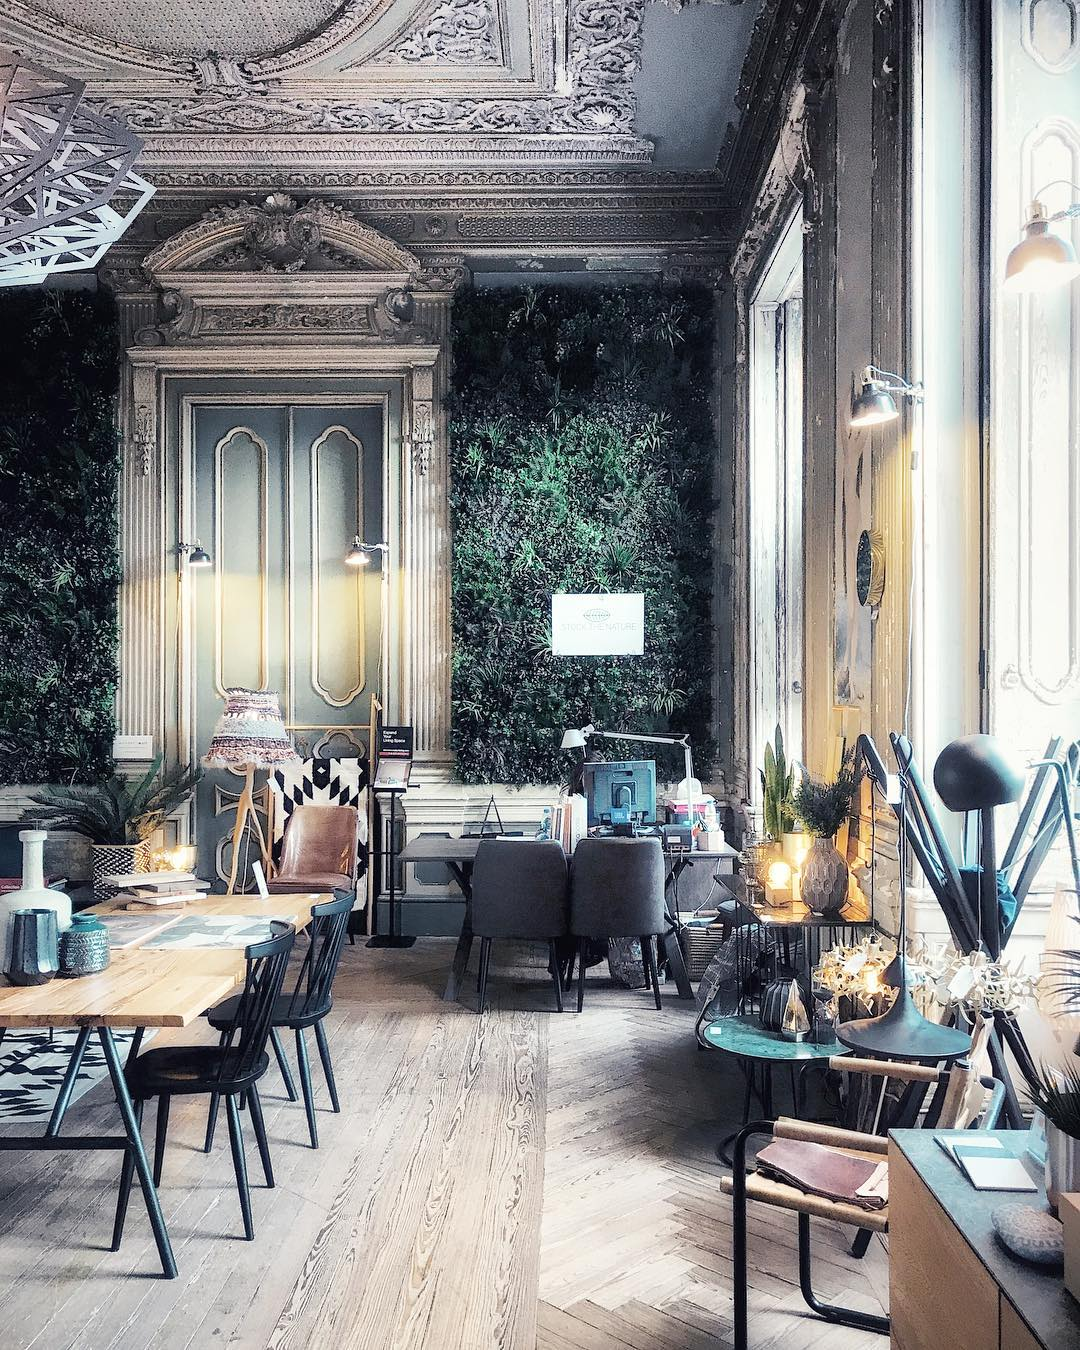 Where to stay in Lisbon - Principe Real